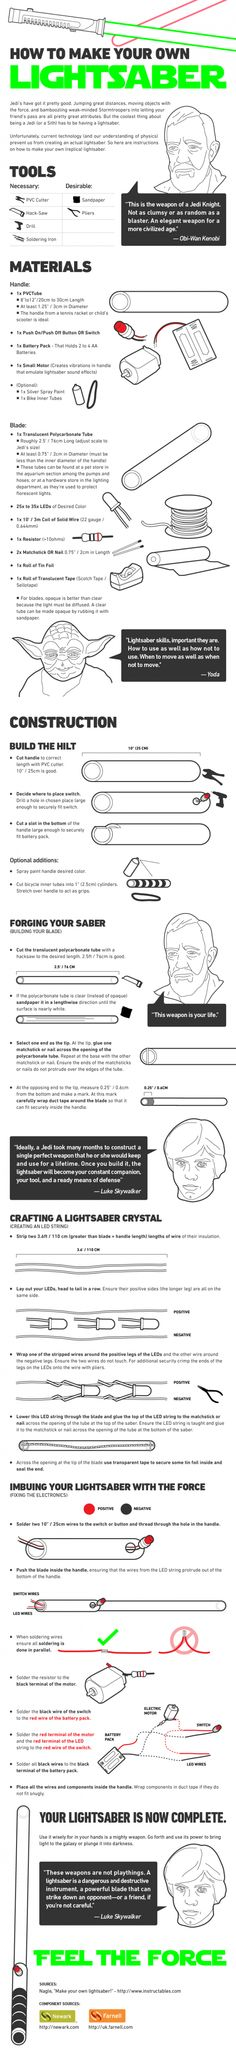 Star Wars- Make your own lightsaber